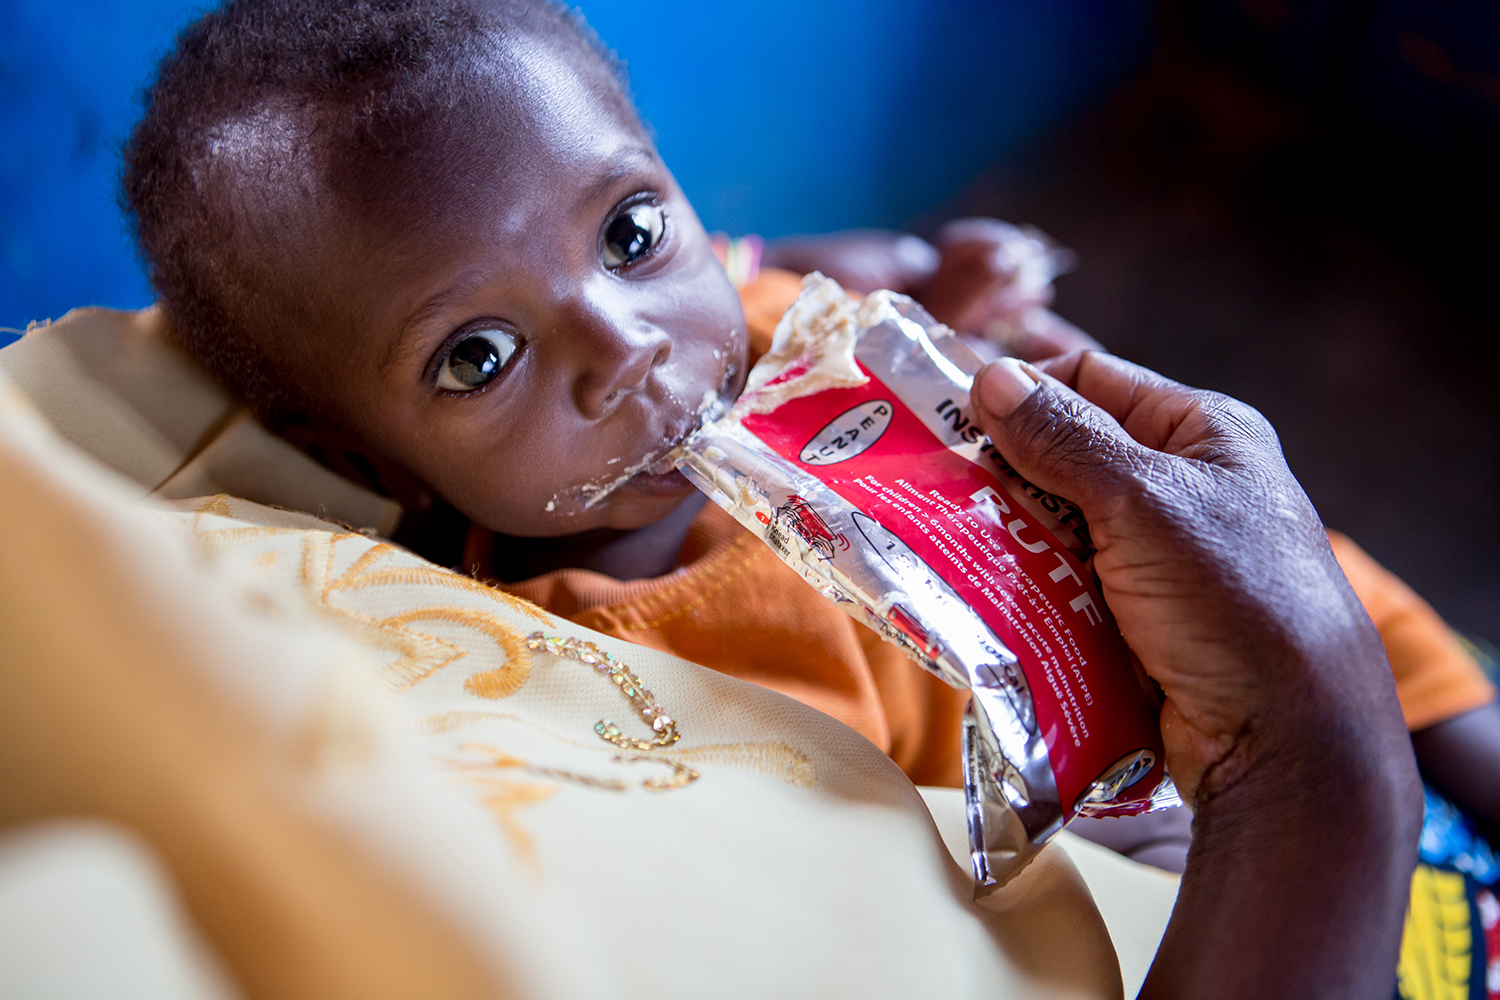 CARITAS Congo, with the support of UNICEF has been implementing